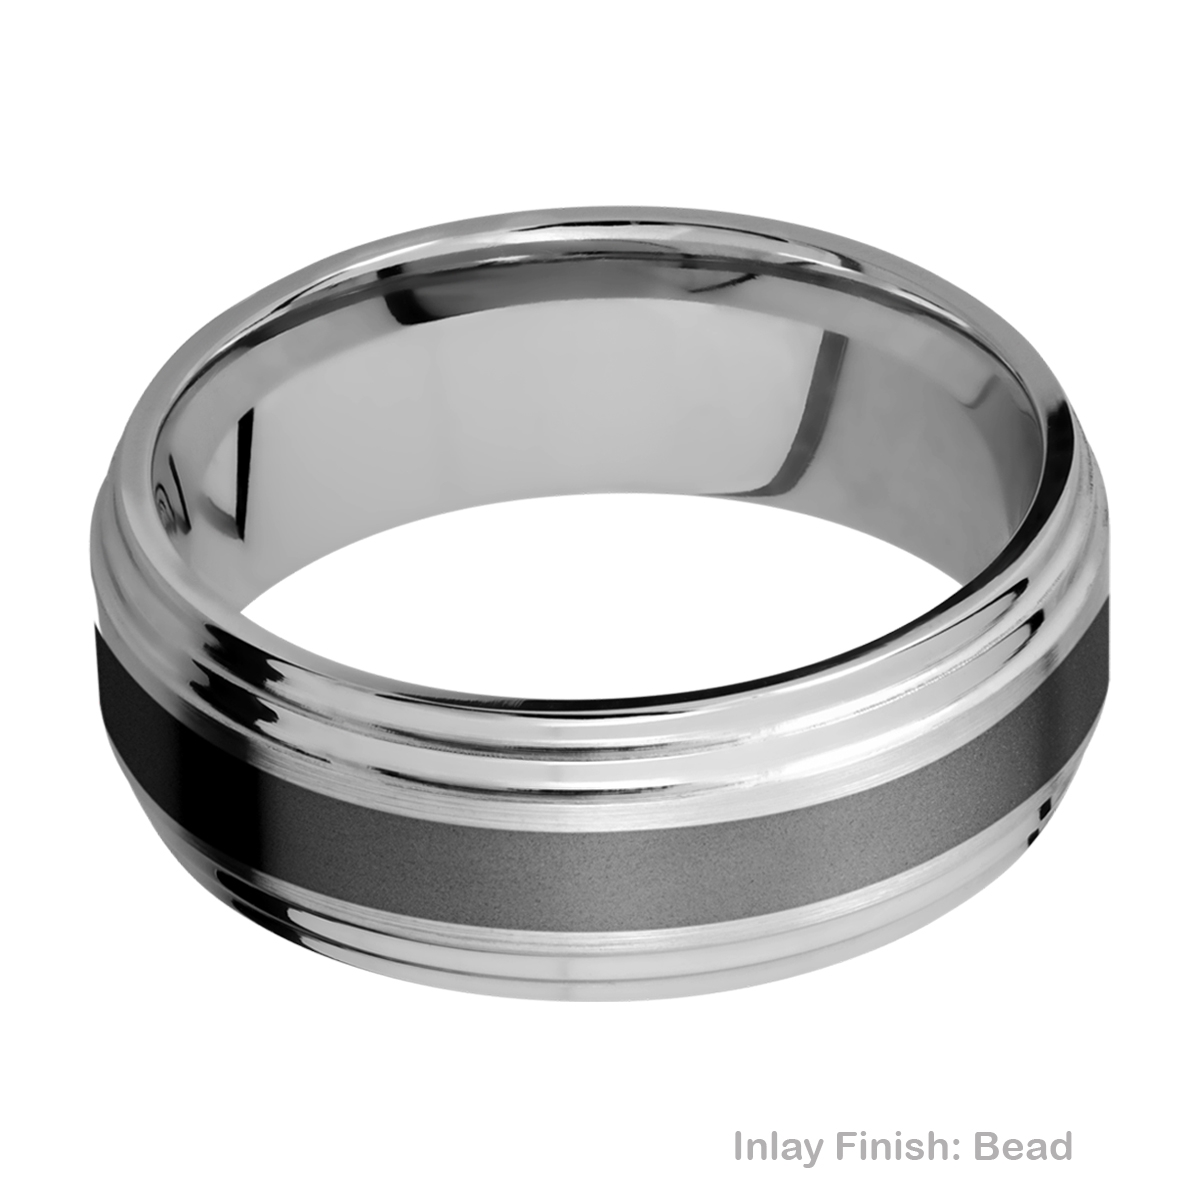 Lashbrook PF8F2S13/ZIRCONIUM Titanium Wedding Ring or Band Alternative View 2